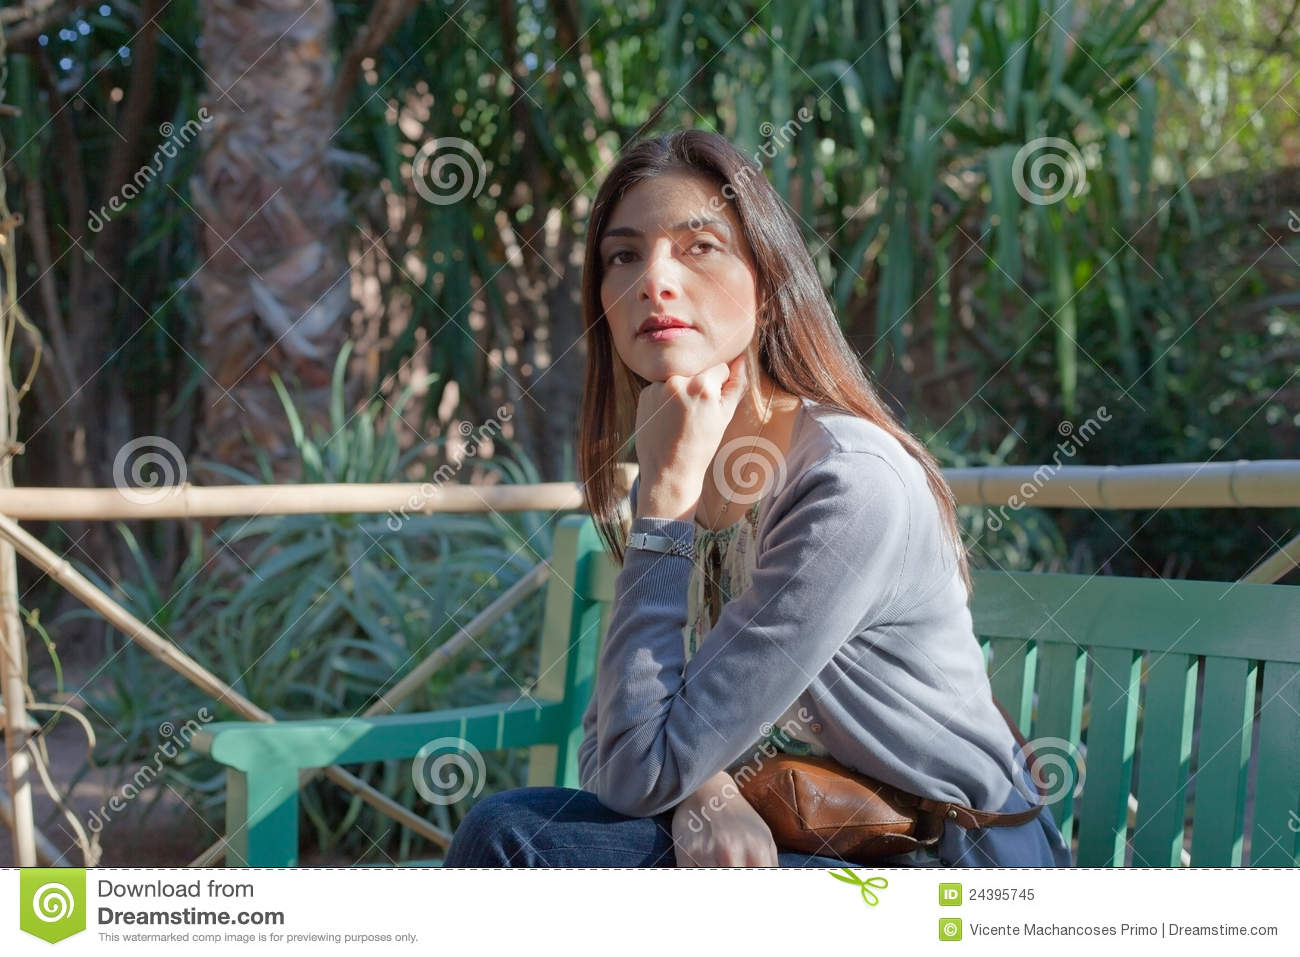 Woman sitting on a park bench stock illustration illustration of arts arab 24395745 for La fitness garden city park class schedule